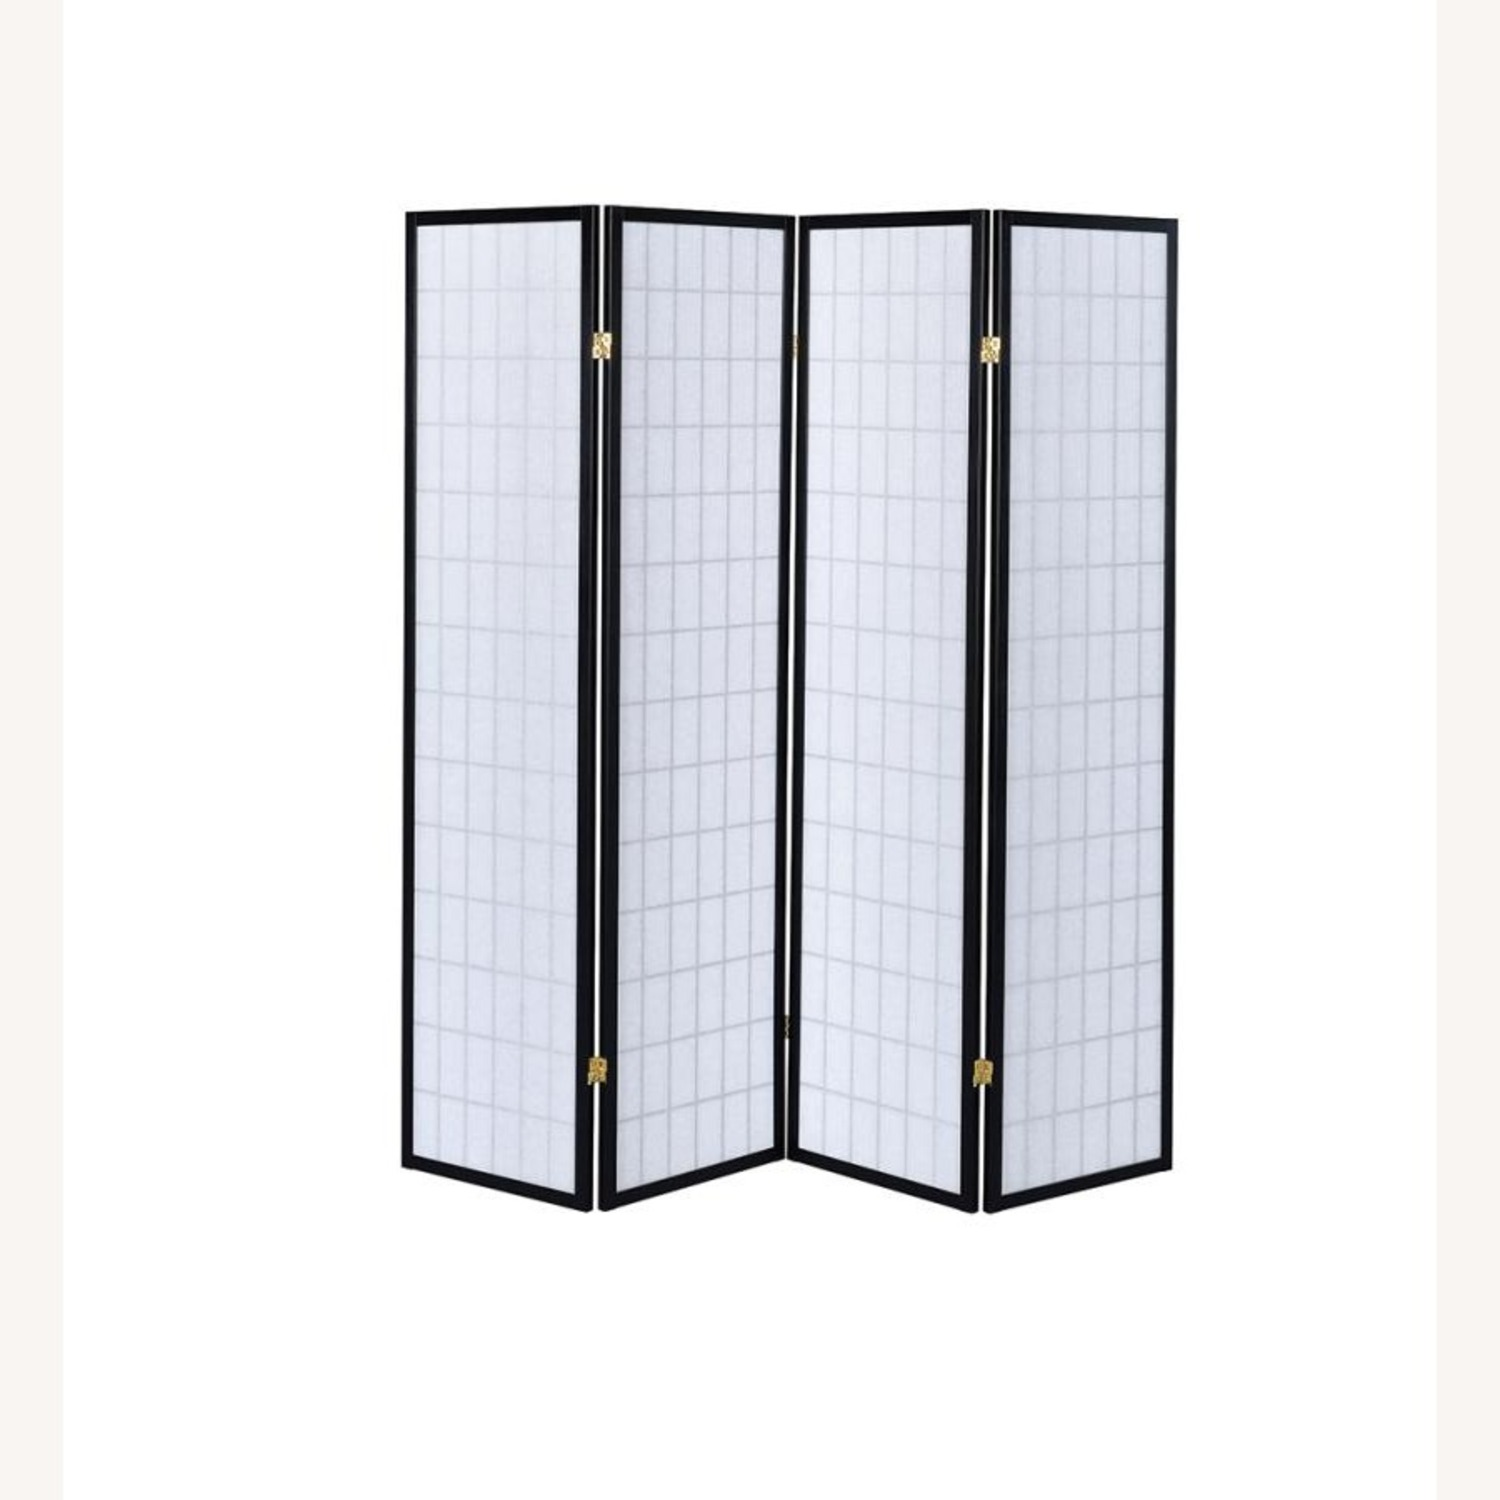 4-Panel Screen In White W/ Linear Grid Design - image-0